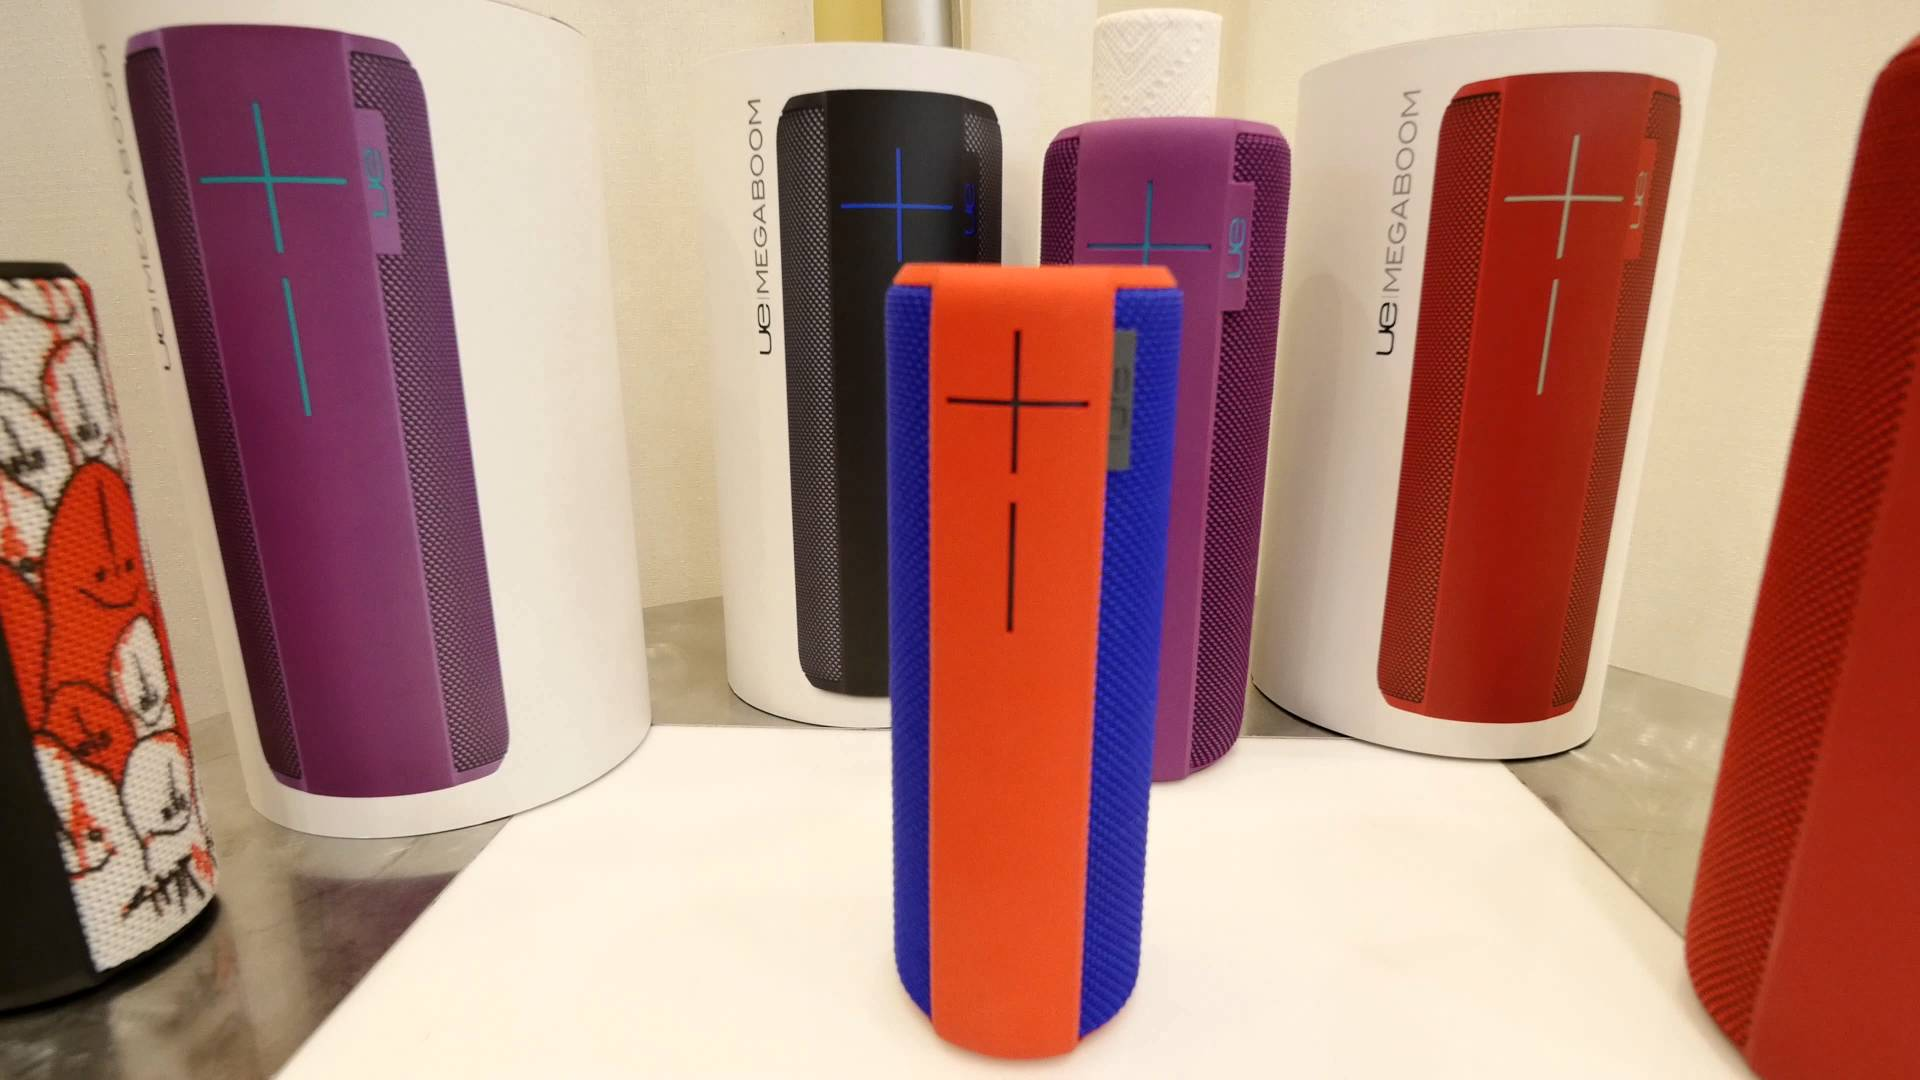 The UE Megaboom should be your next Bluetooth-enabled speaker